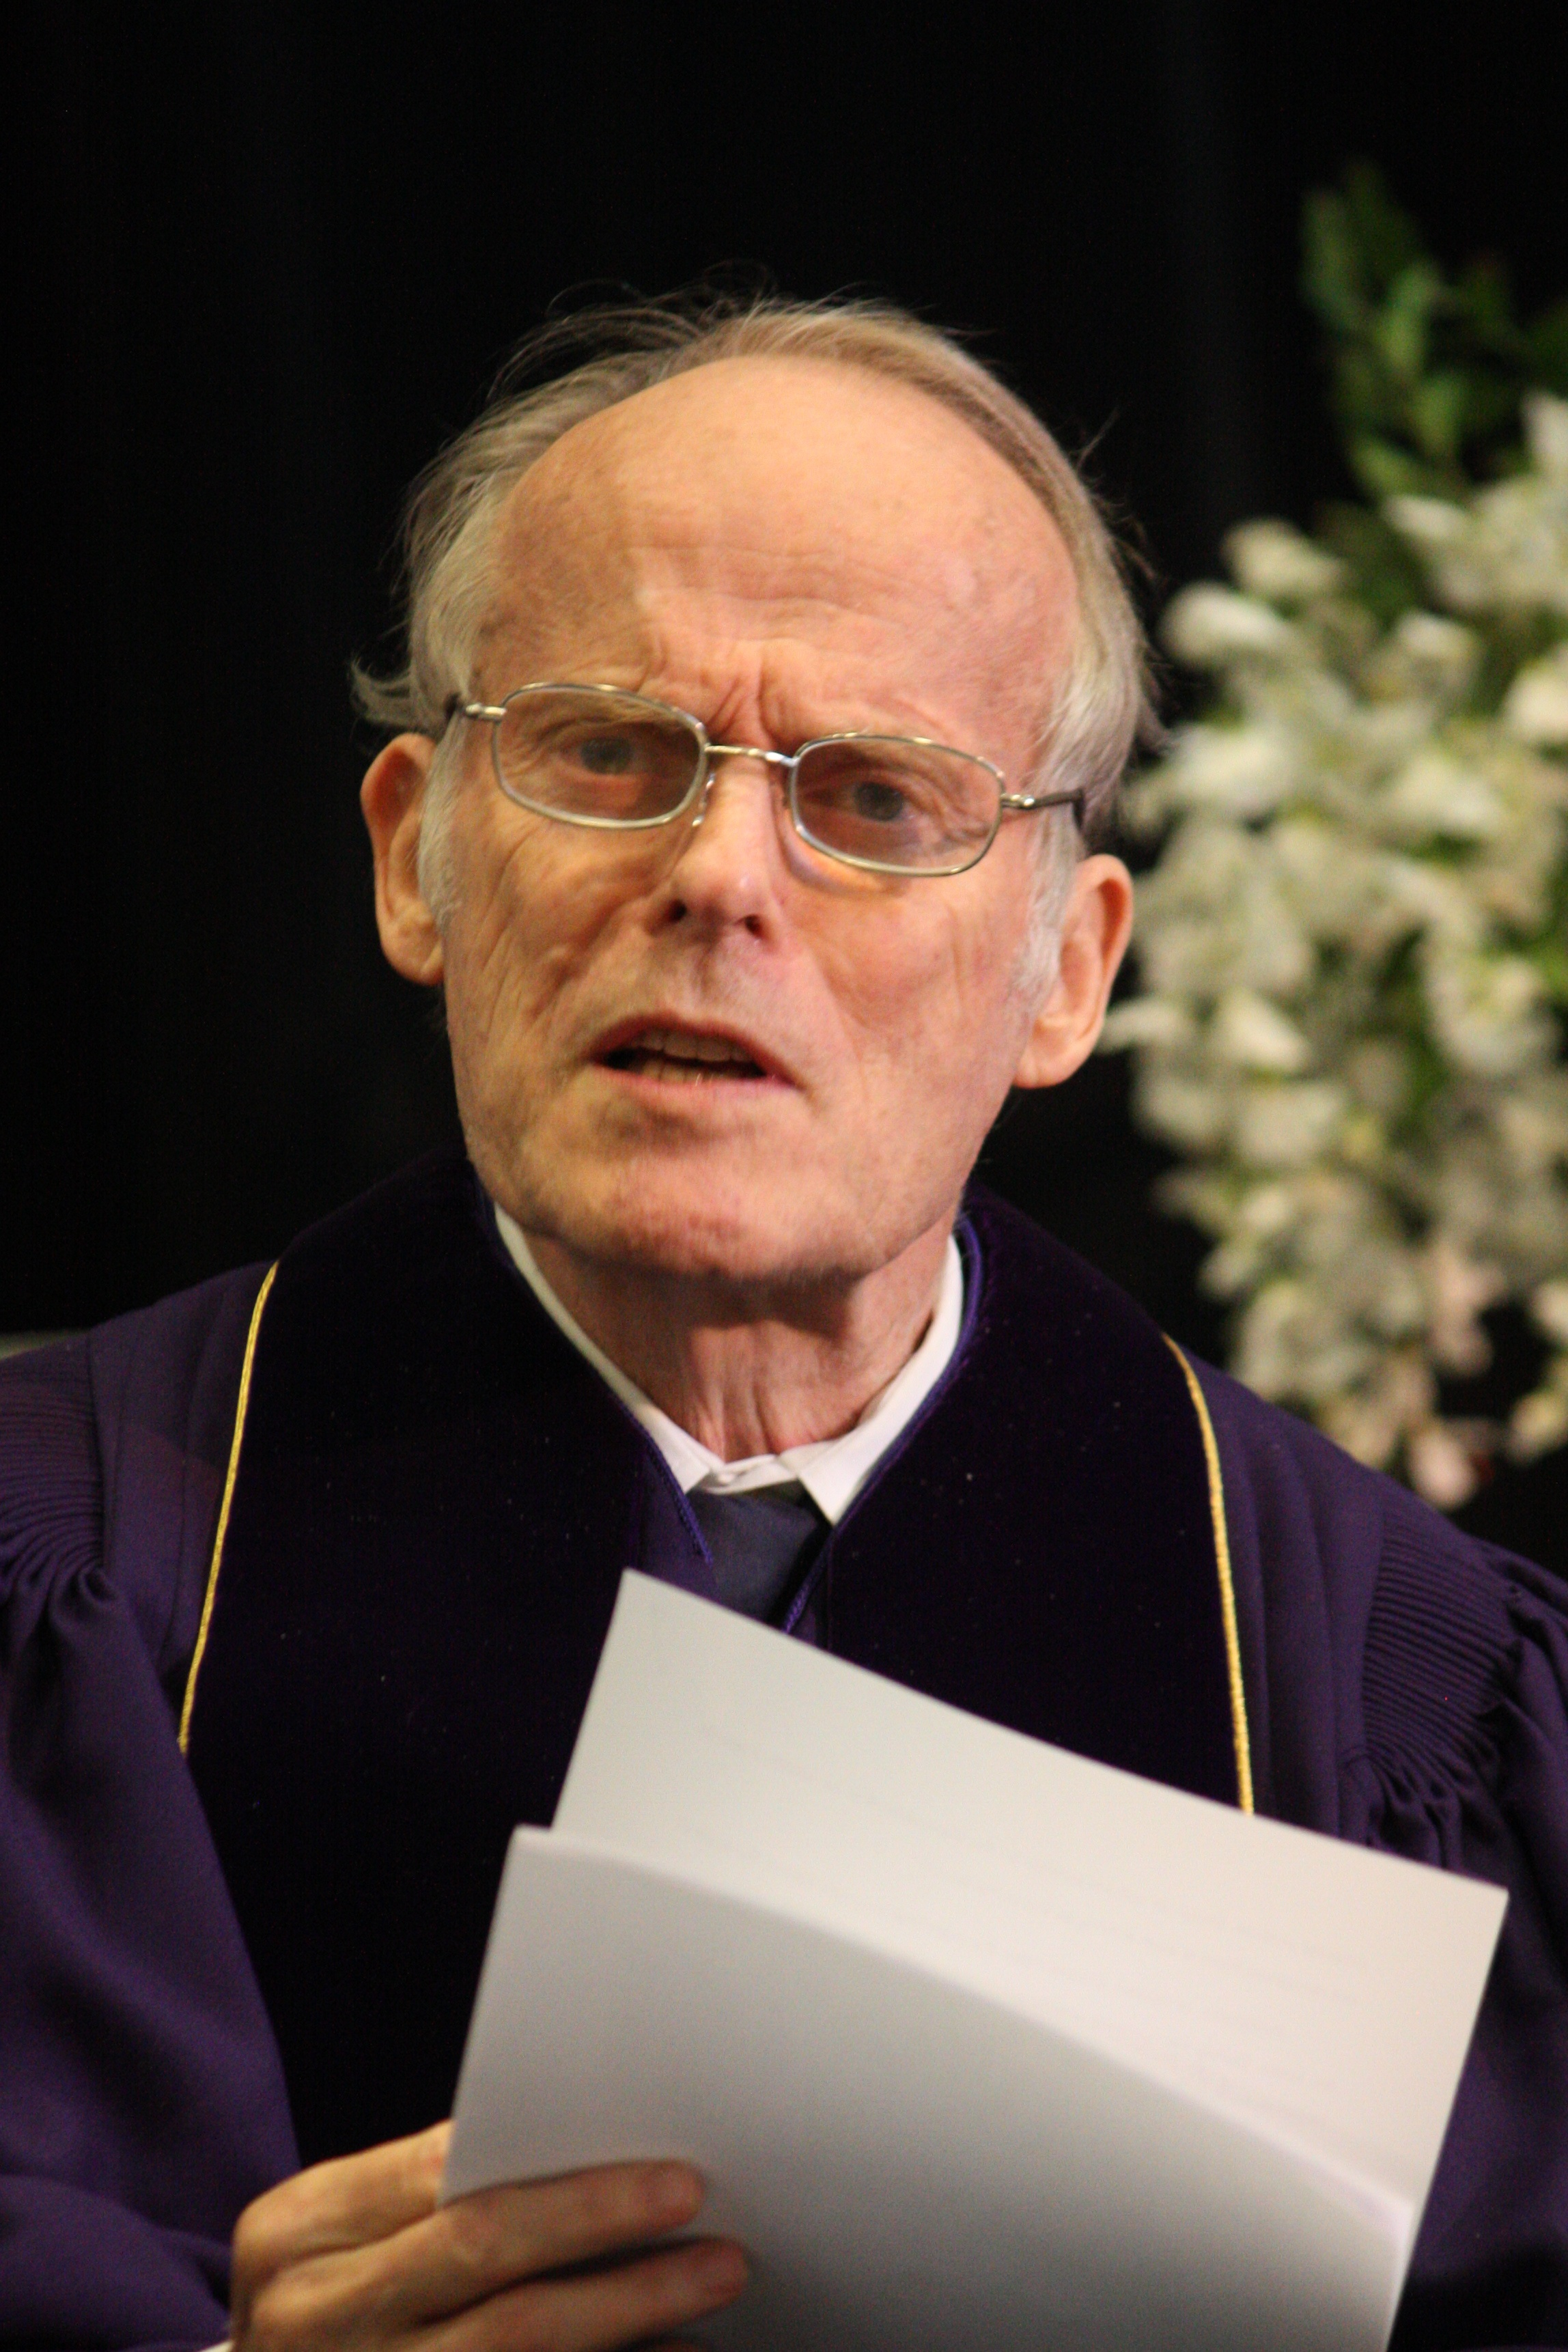 Dr. David Aikman speaks at Patrick Henry College (PHC) commencement